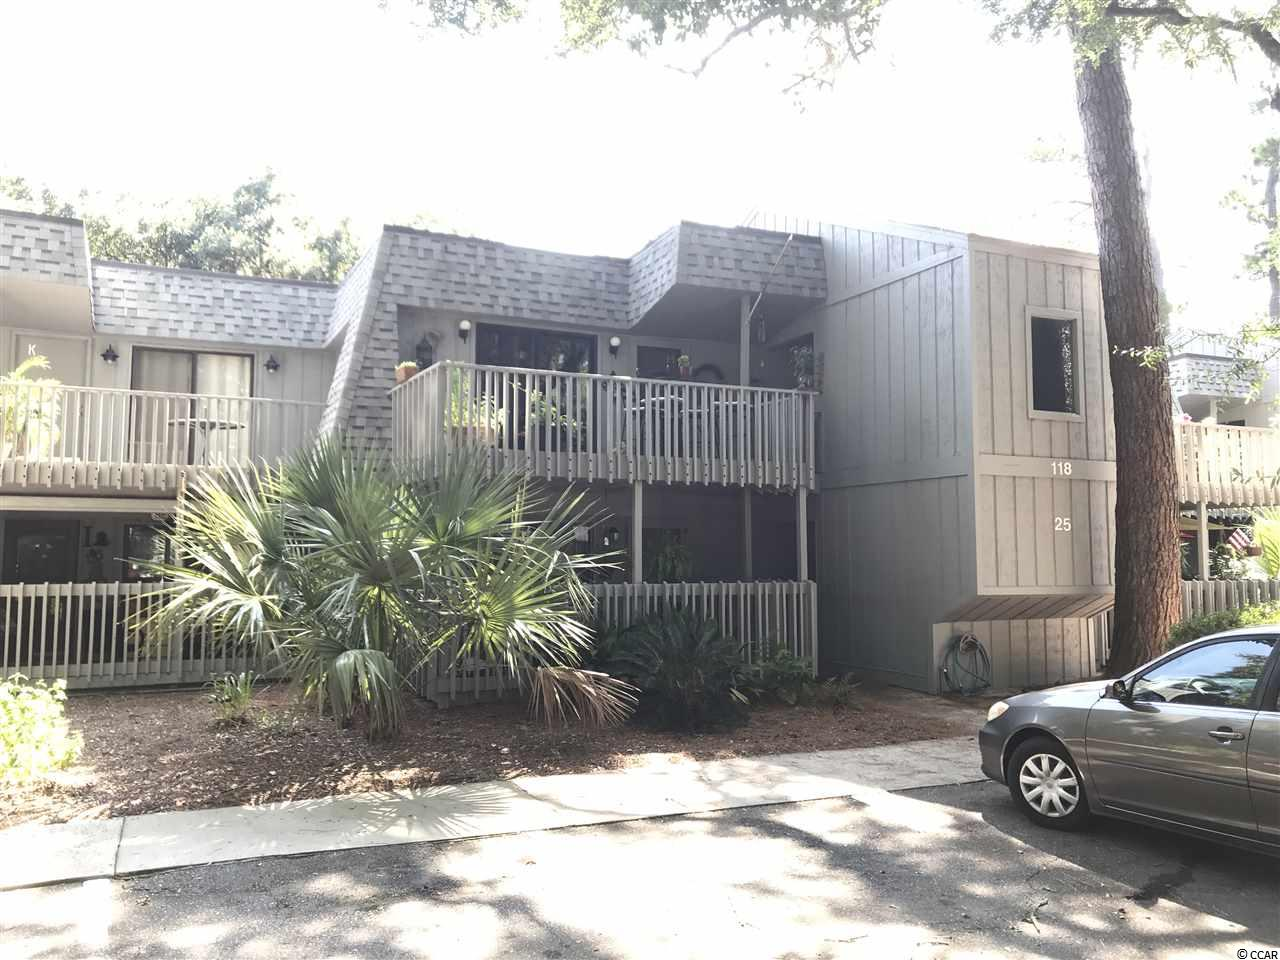 Quiet Location on the first floor, with 1 bedroom 1.0 bath, and fenced patio. Salt Marsh Cove is a well established community located on the creekside of Litchfield Mainland under beautiful live oak trees and is conveniently located to beach (5 minutes!), shopping, and restaurants. The grounds are beautifully maintained and there is a community dock on the creek, and a pool with clubhouse.